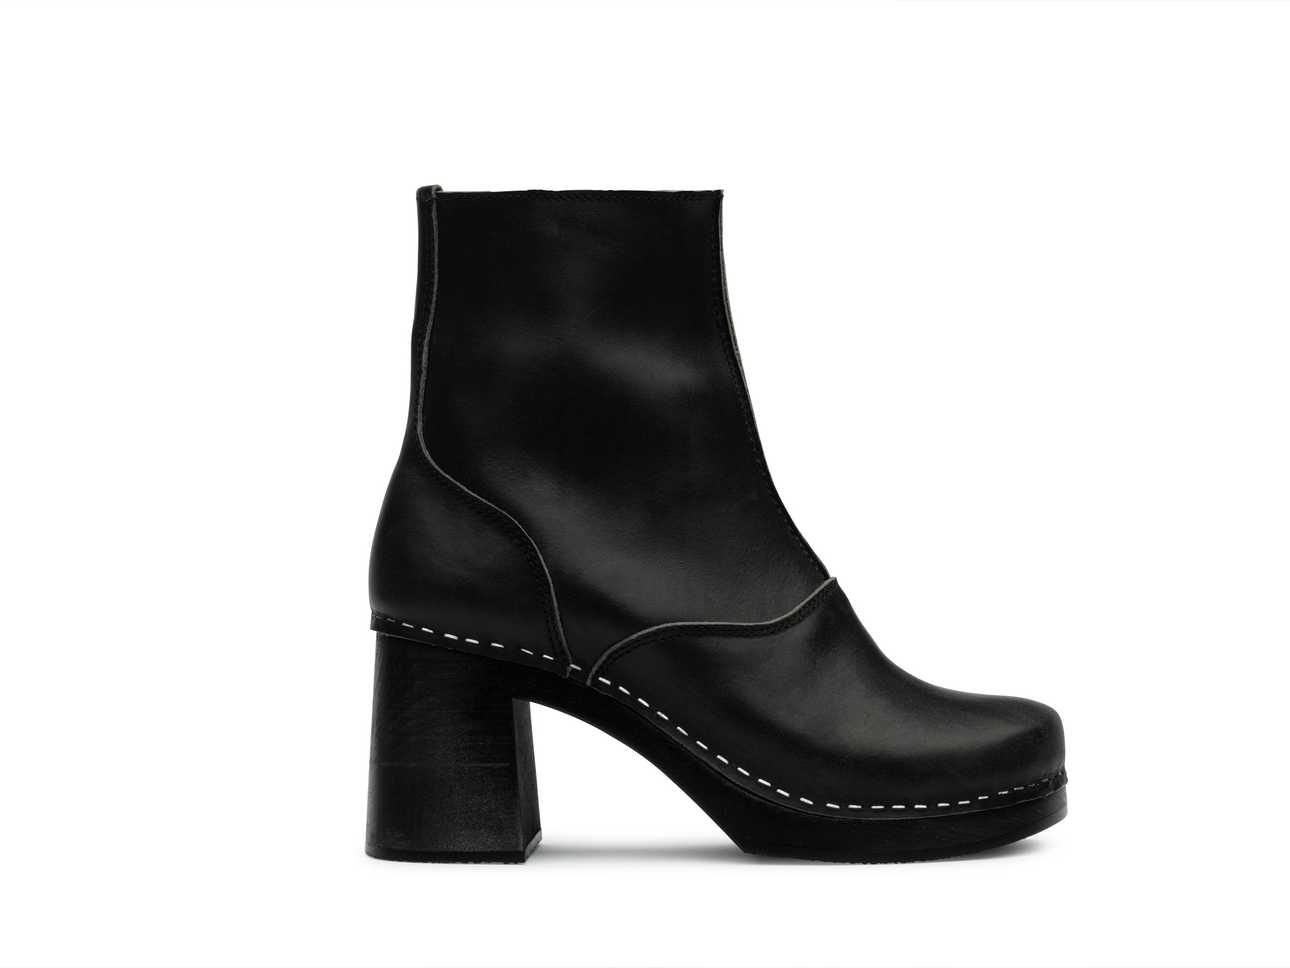 60s boot Black/ black sole